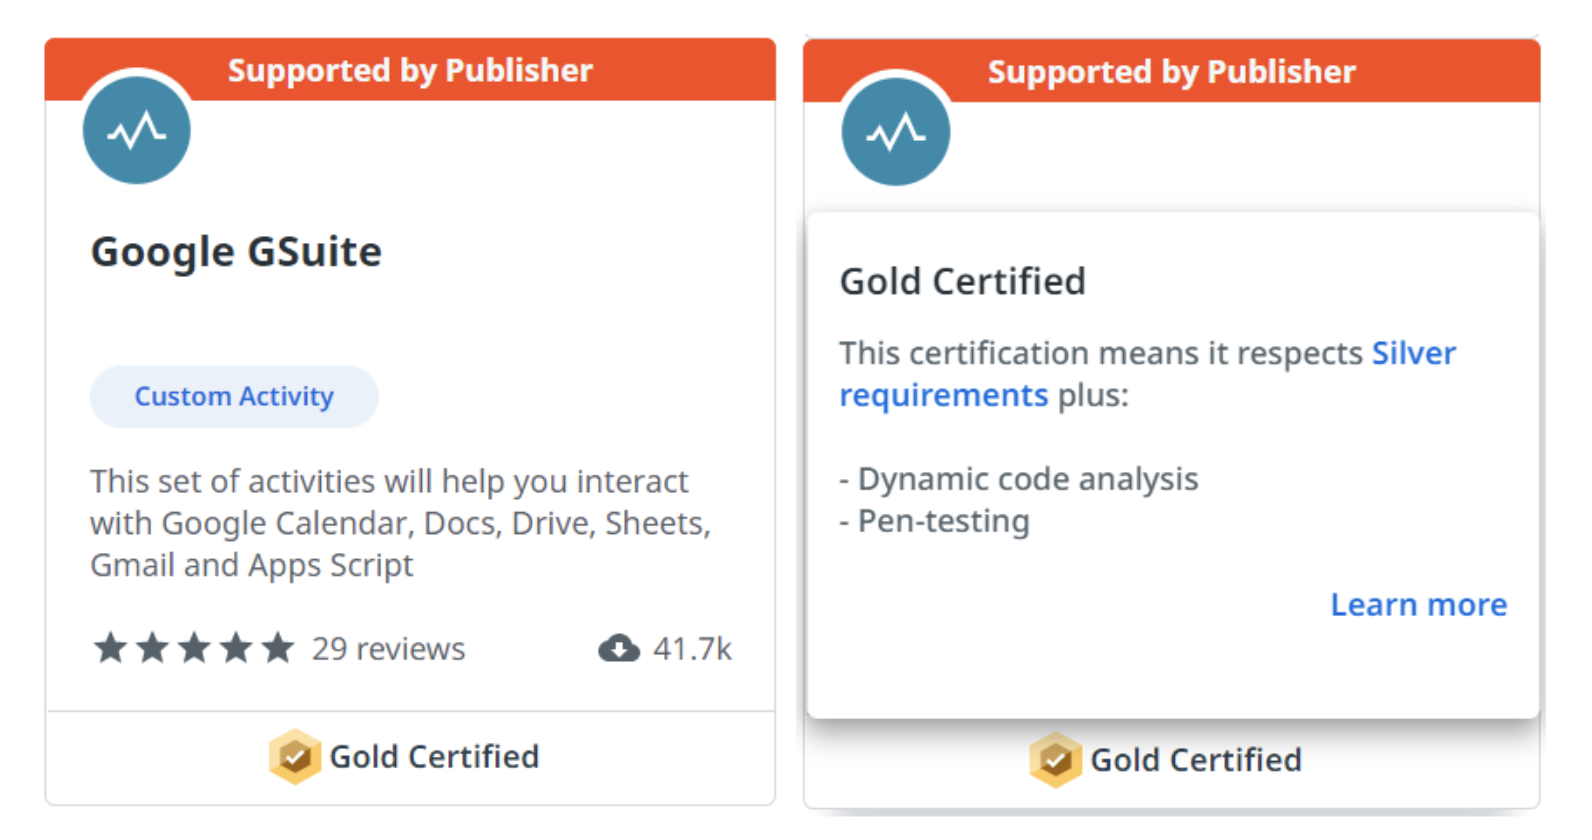 uipath-marketplace-gold-certified-example